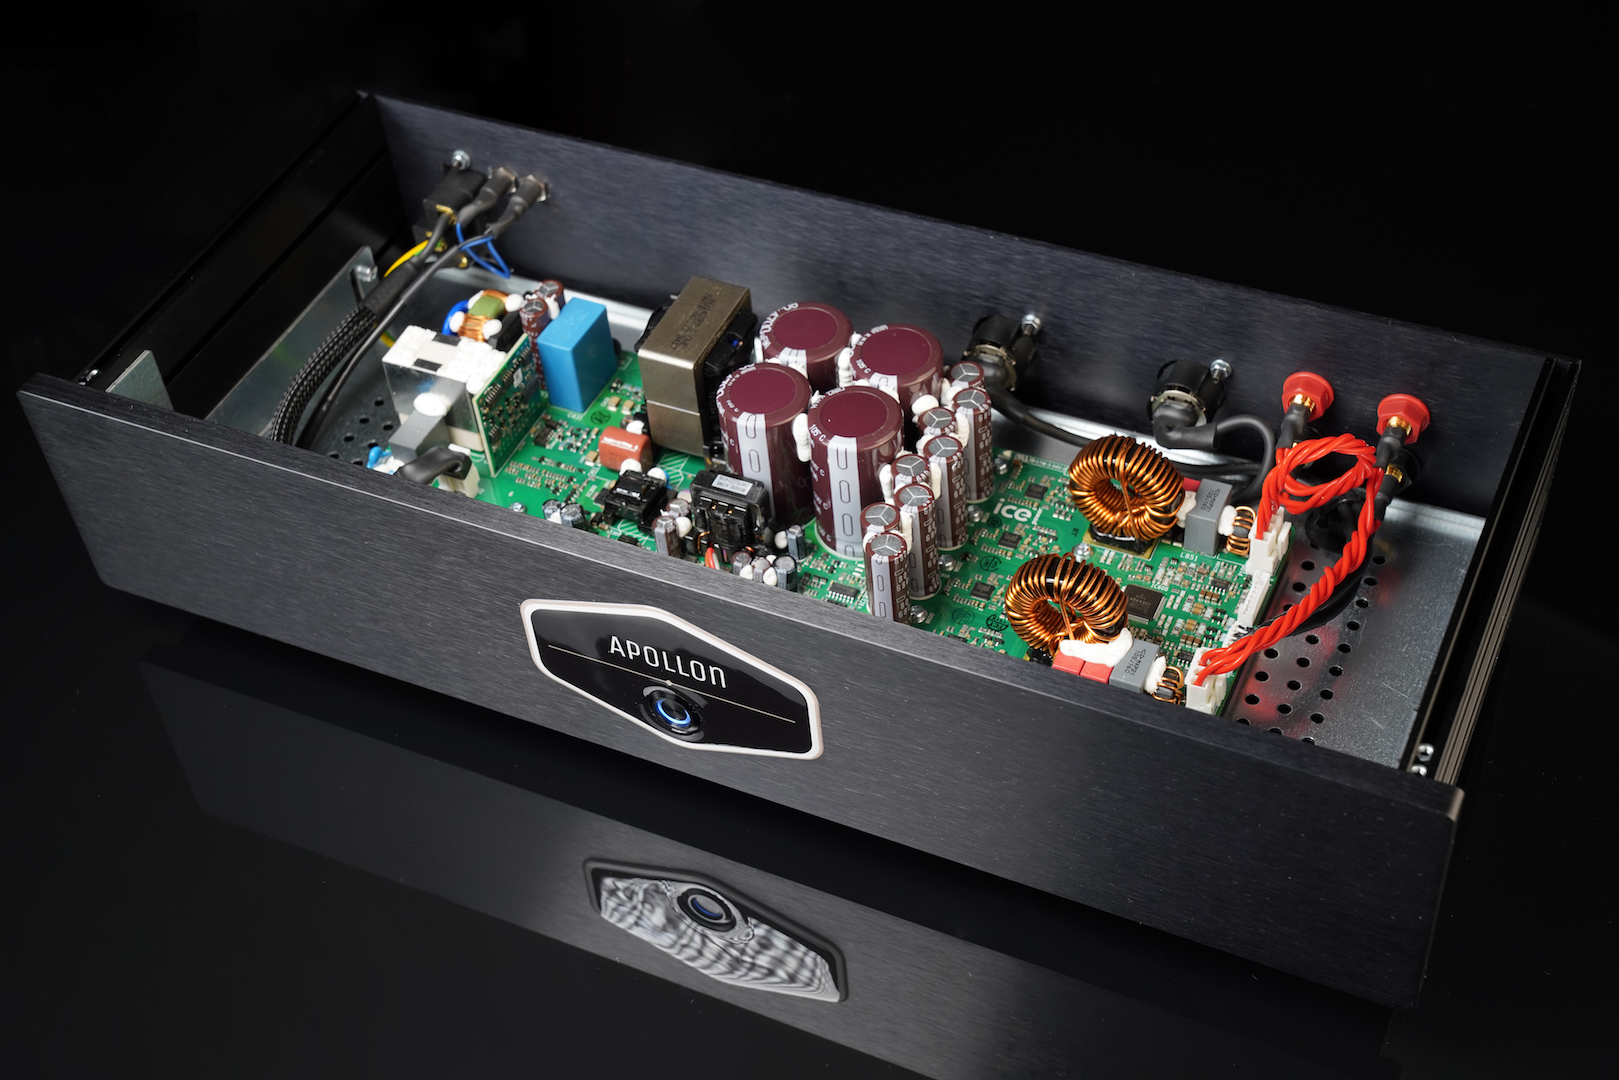 No love for IcePower? | Audio Science Review (ASR) Forum